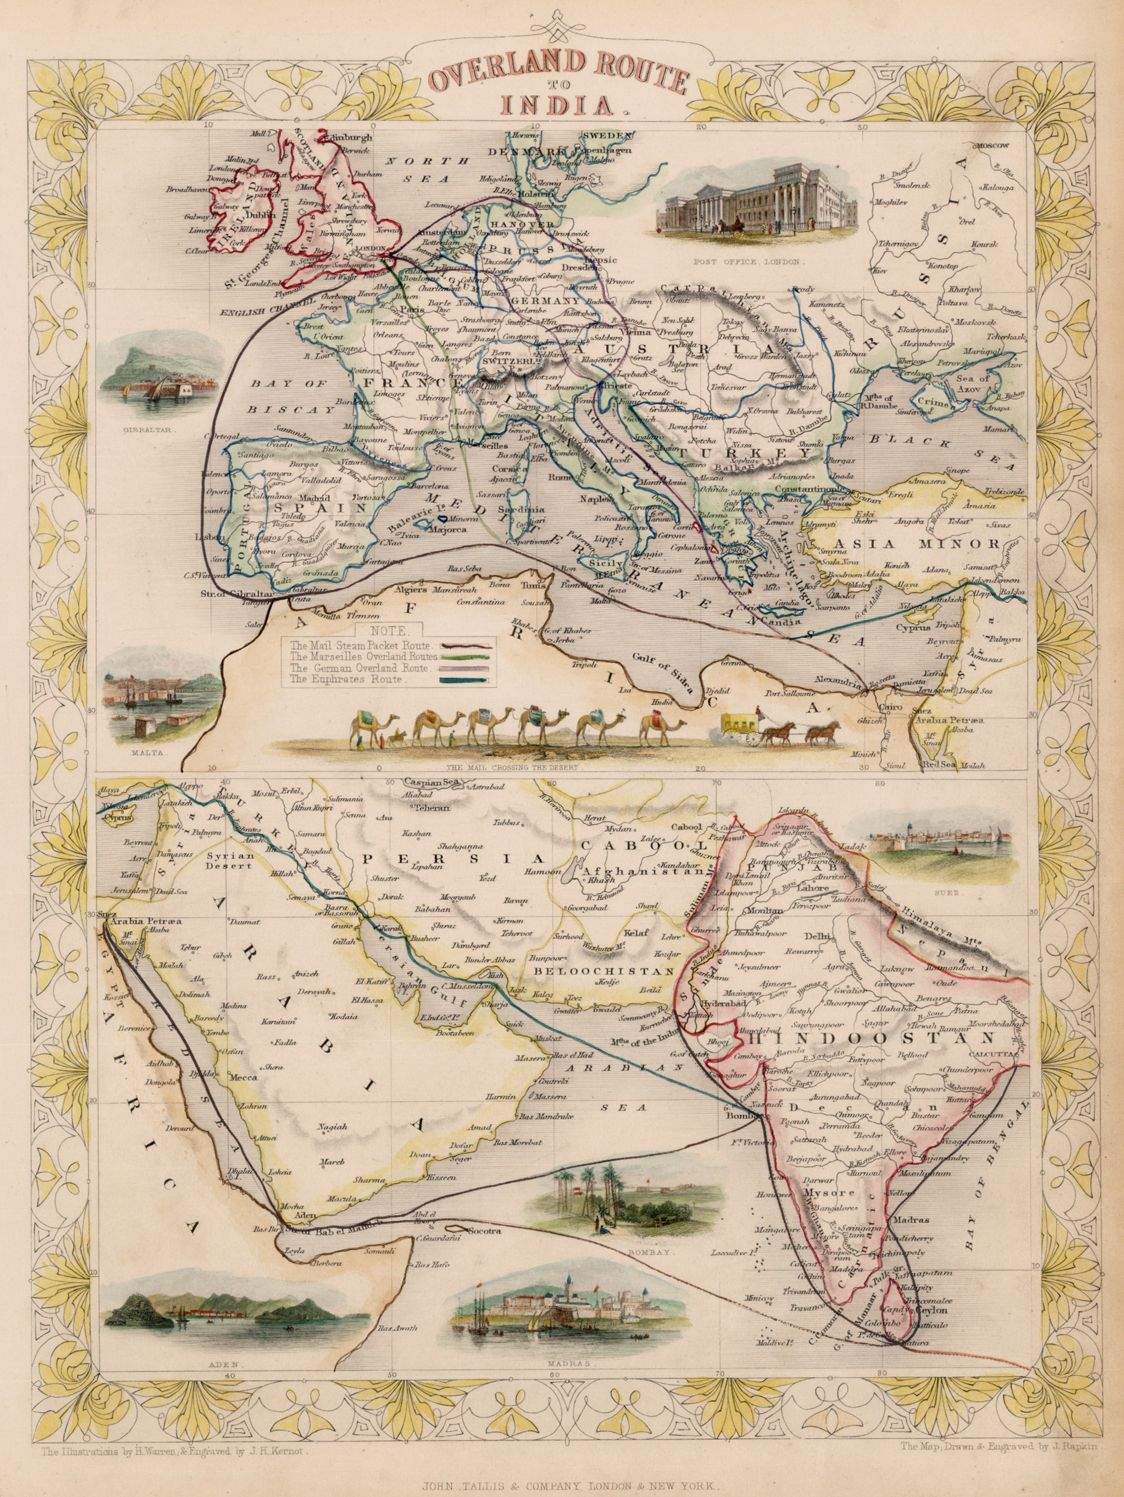 Overland route to india early 19th century map india overland route to india early 19th century map india gumiabroncs Images